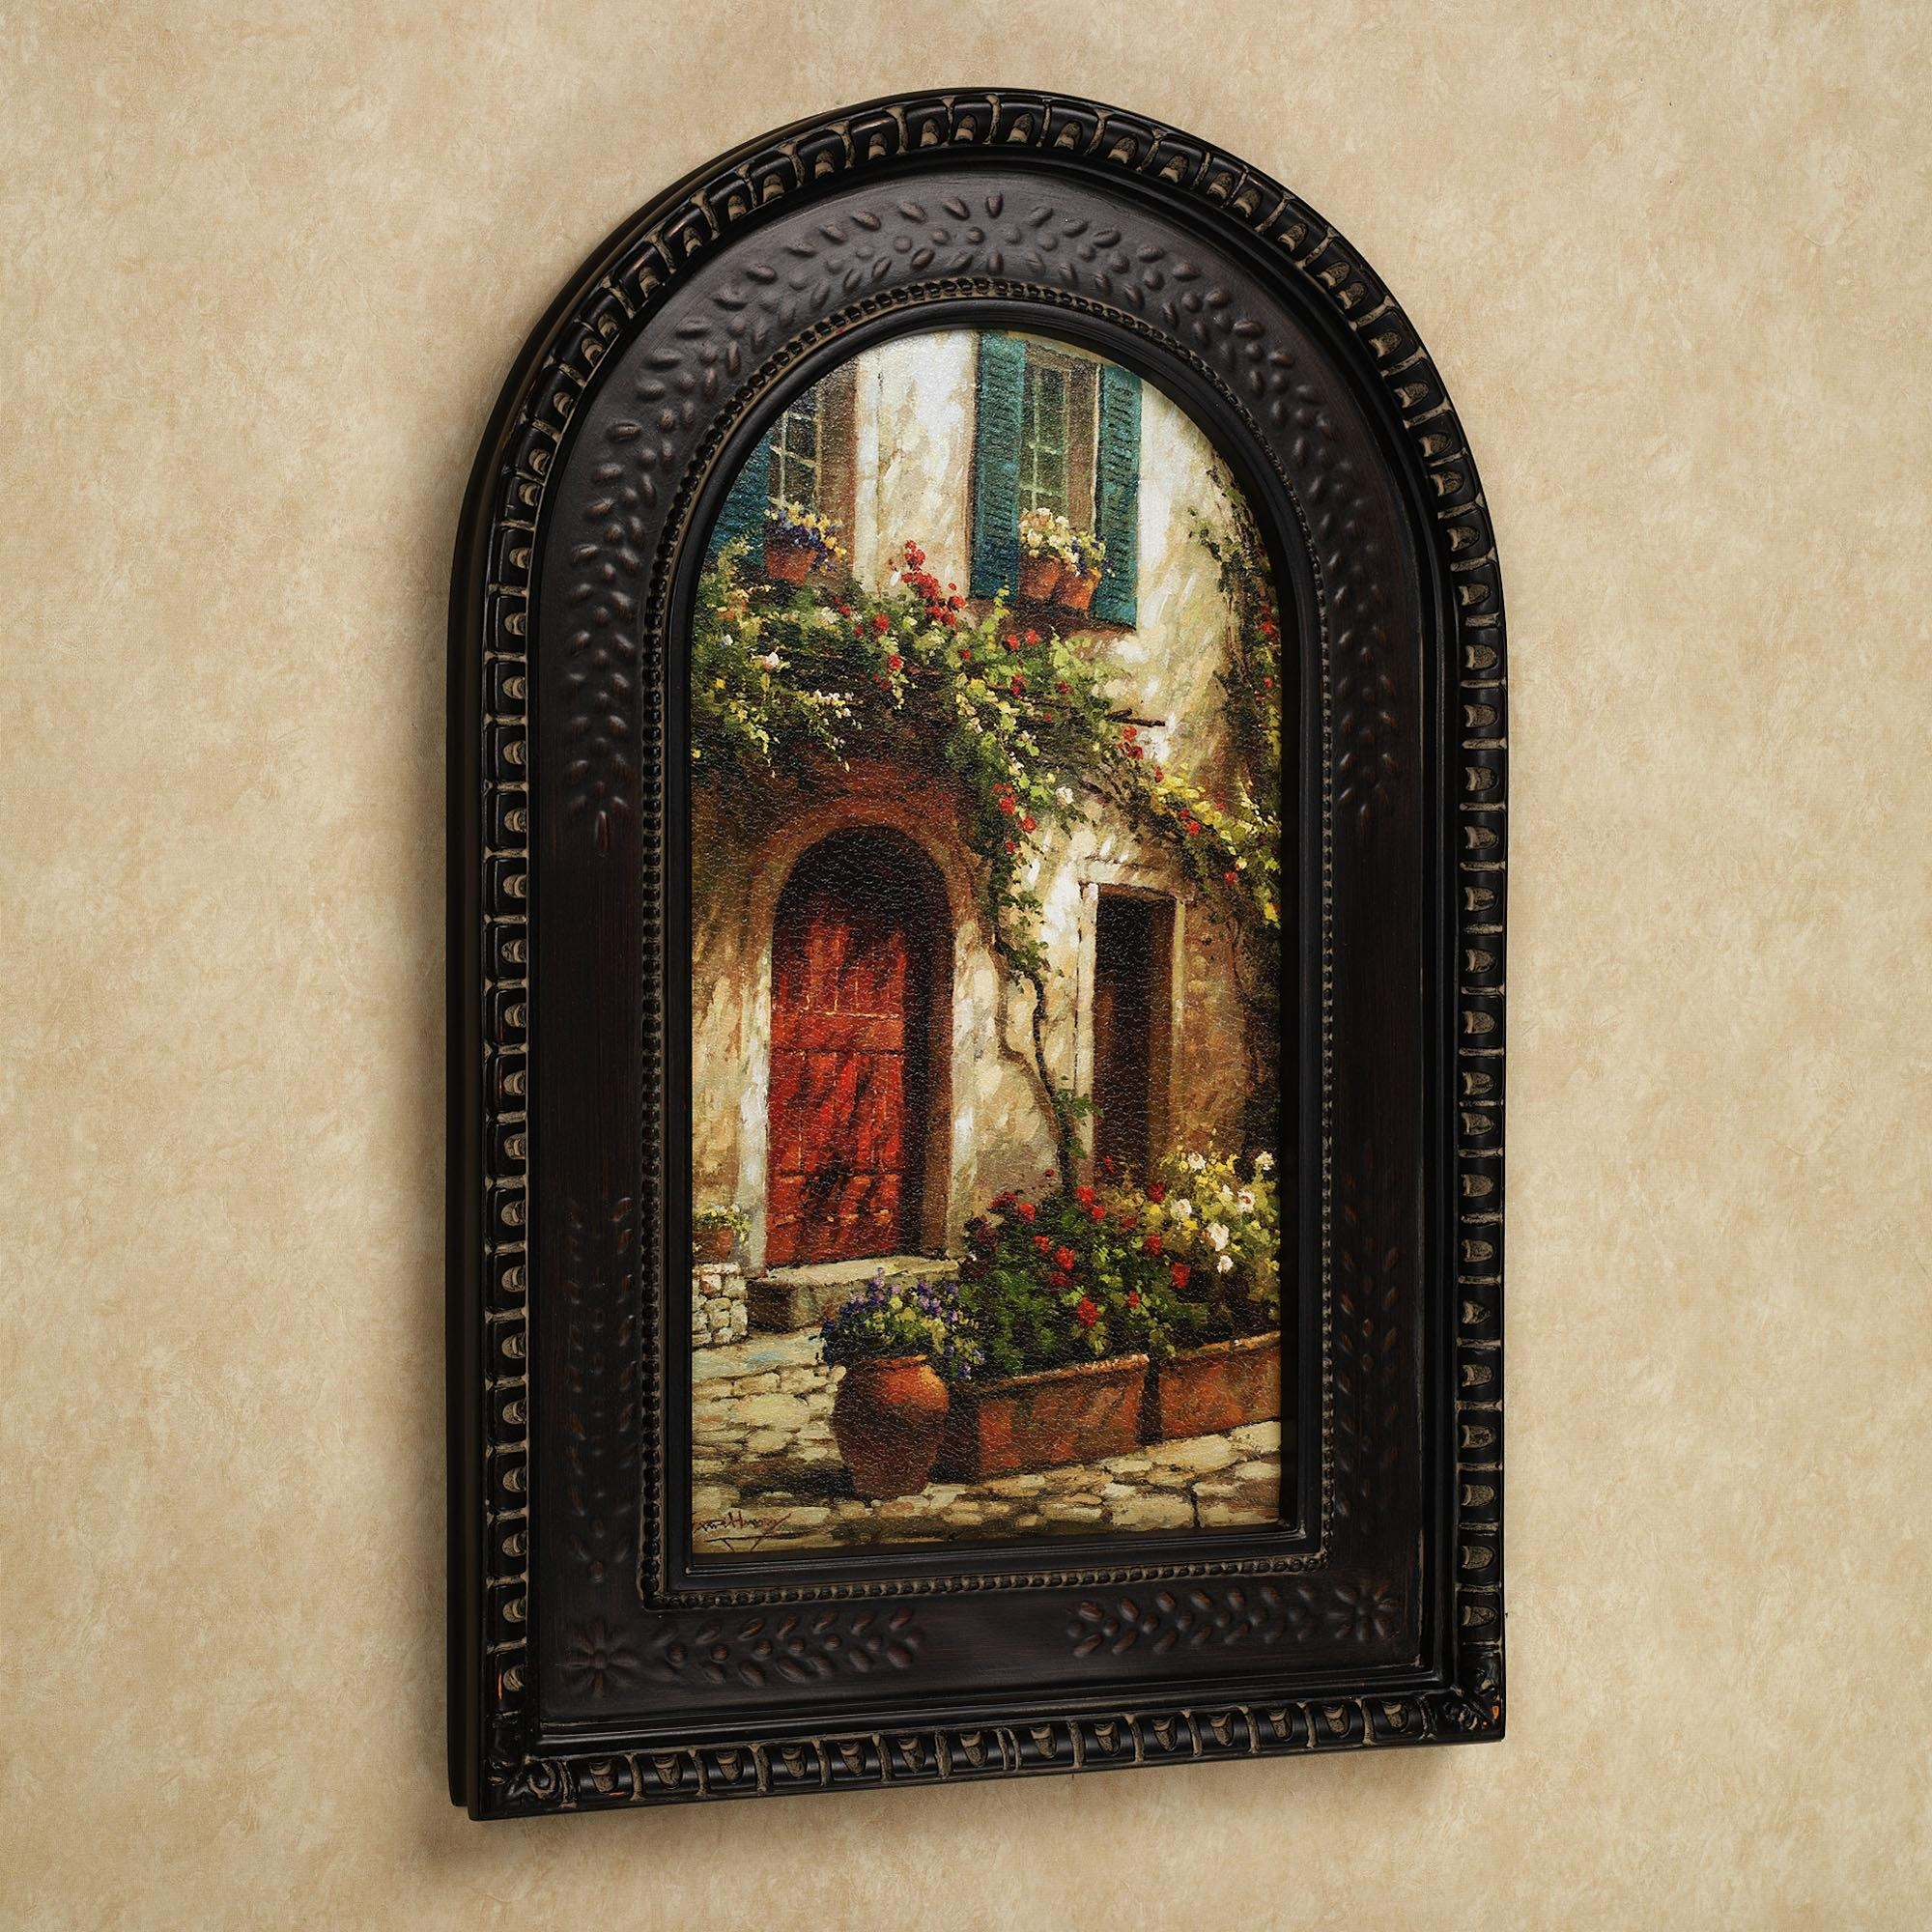 Wall Art Ideas Design : Framed Home Italian Wall Art Design Pertaining To Italian Wall Art Decor (Image 19 of 20)